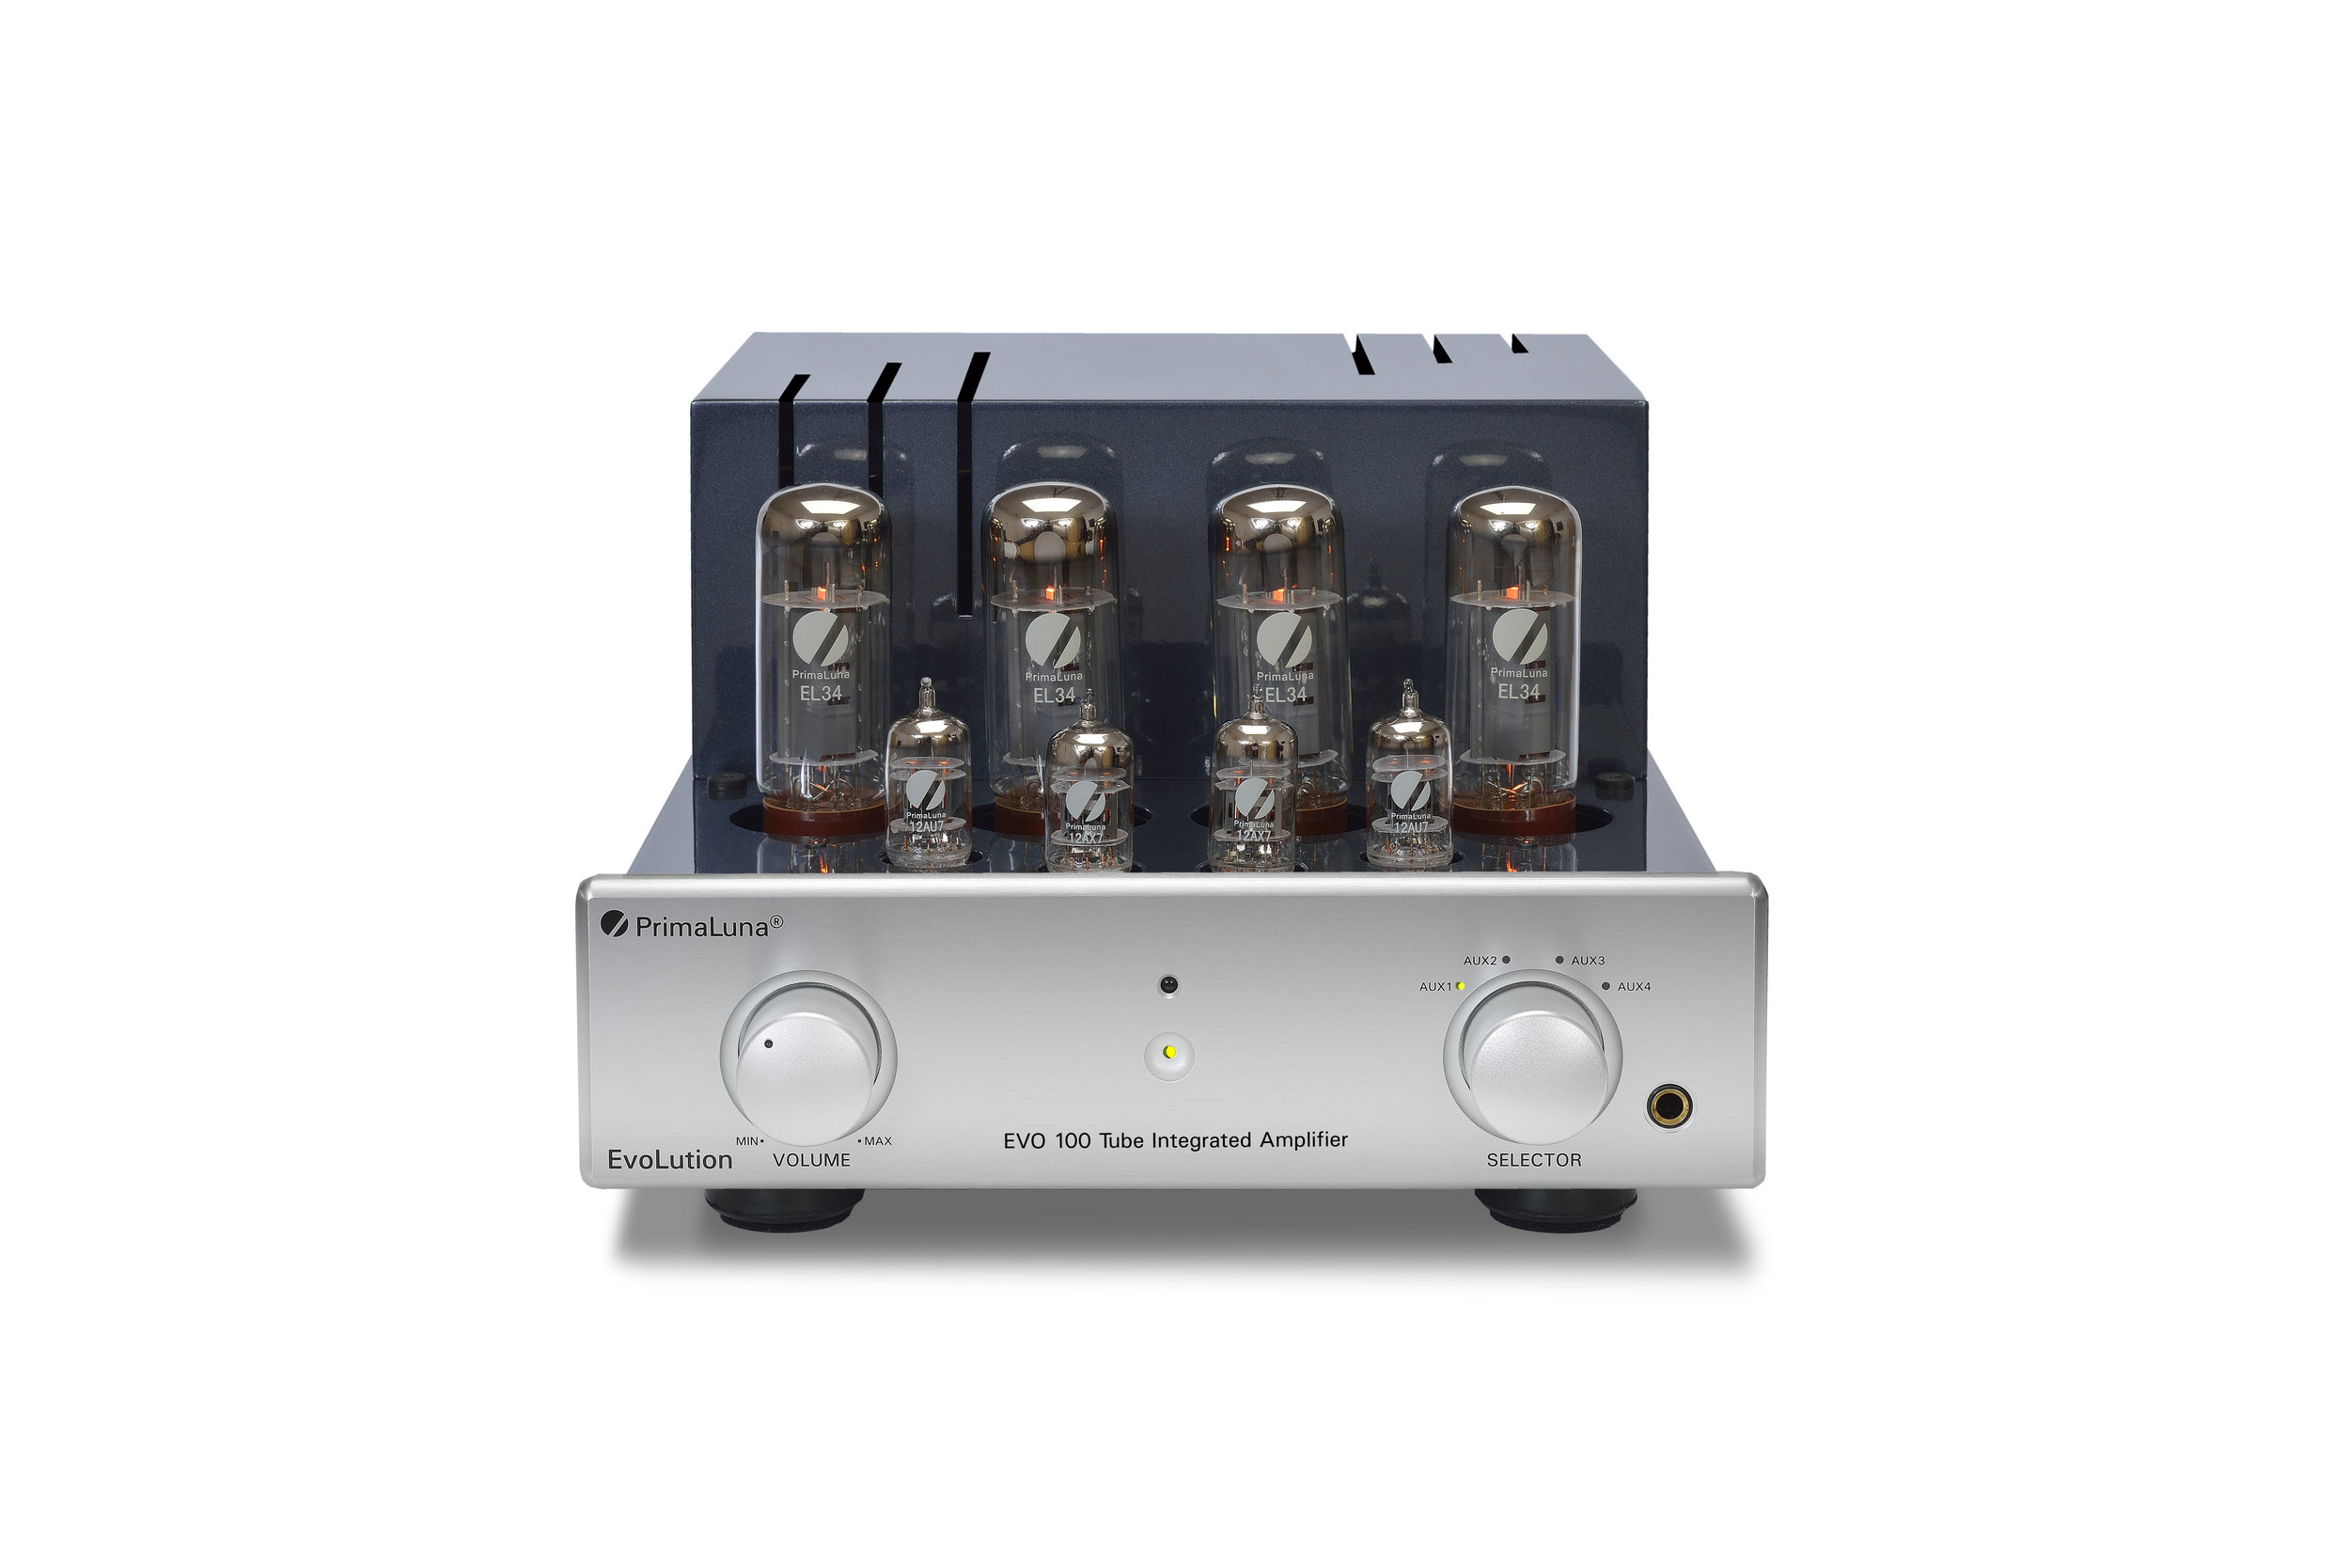 171b - PrimaLuna EVO 100 Tube Integrated Amplifier - silver - front - without cage - white background.jpg